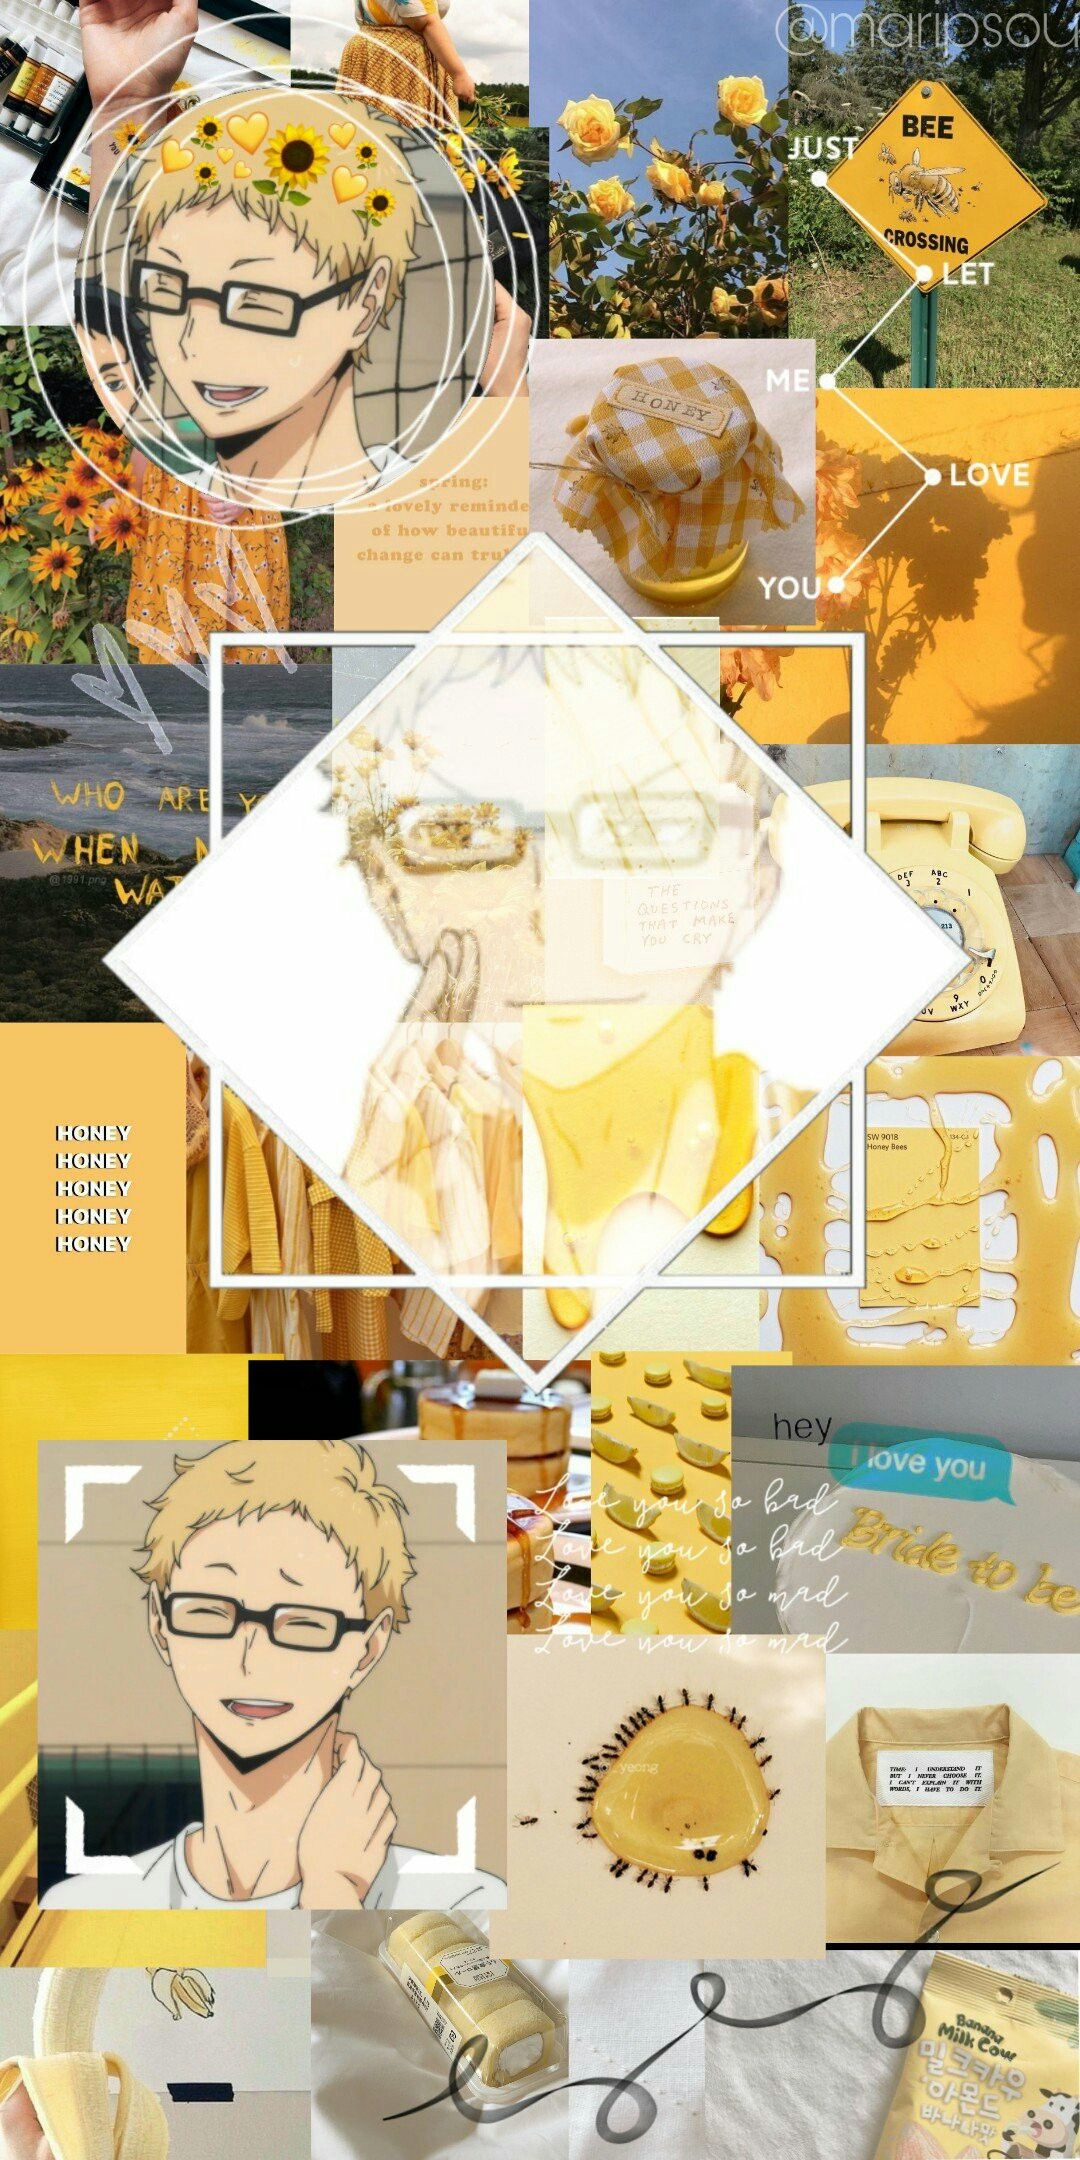 Retro anime wallpapers top free retro anime backgrounds. Pin by Hazem on Anime Aesthetic wallpapers | Haikyuu ...